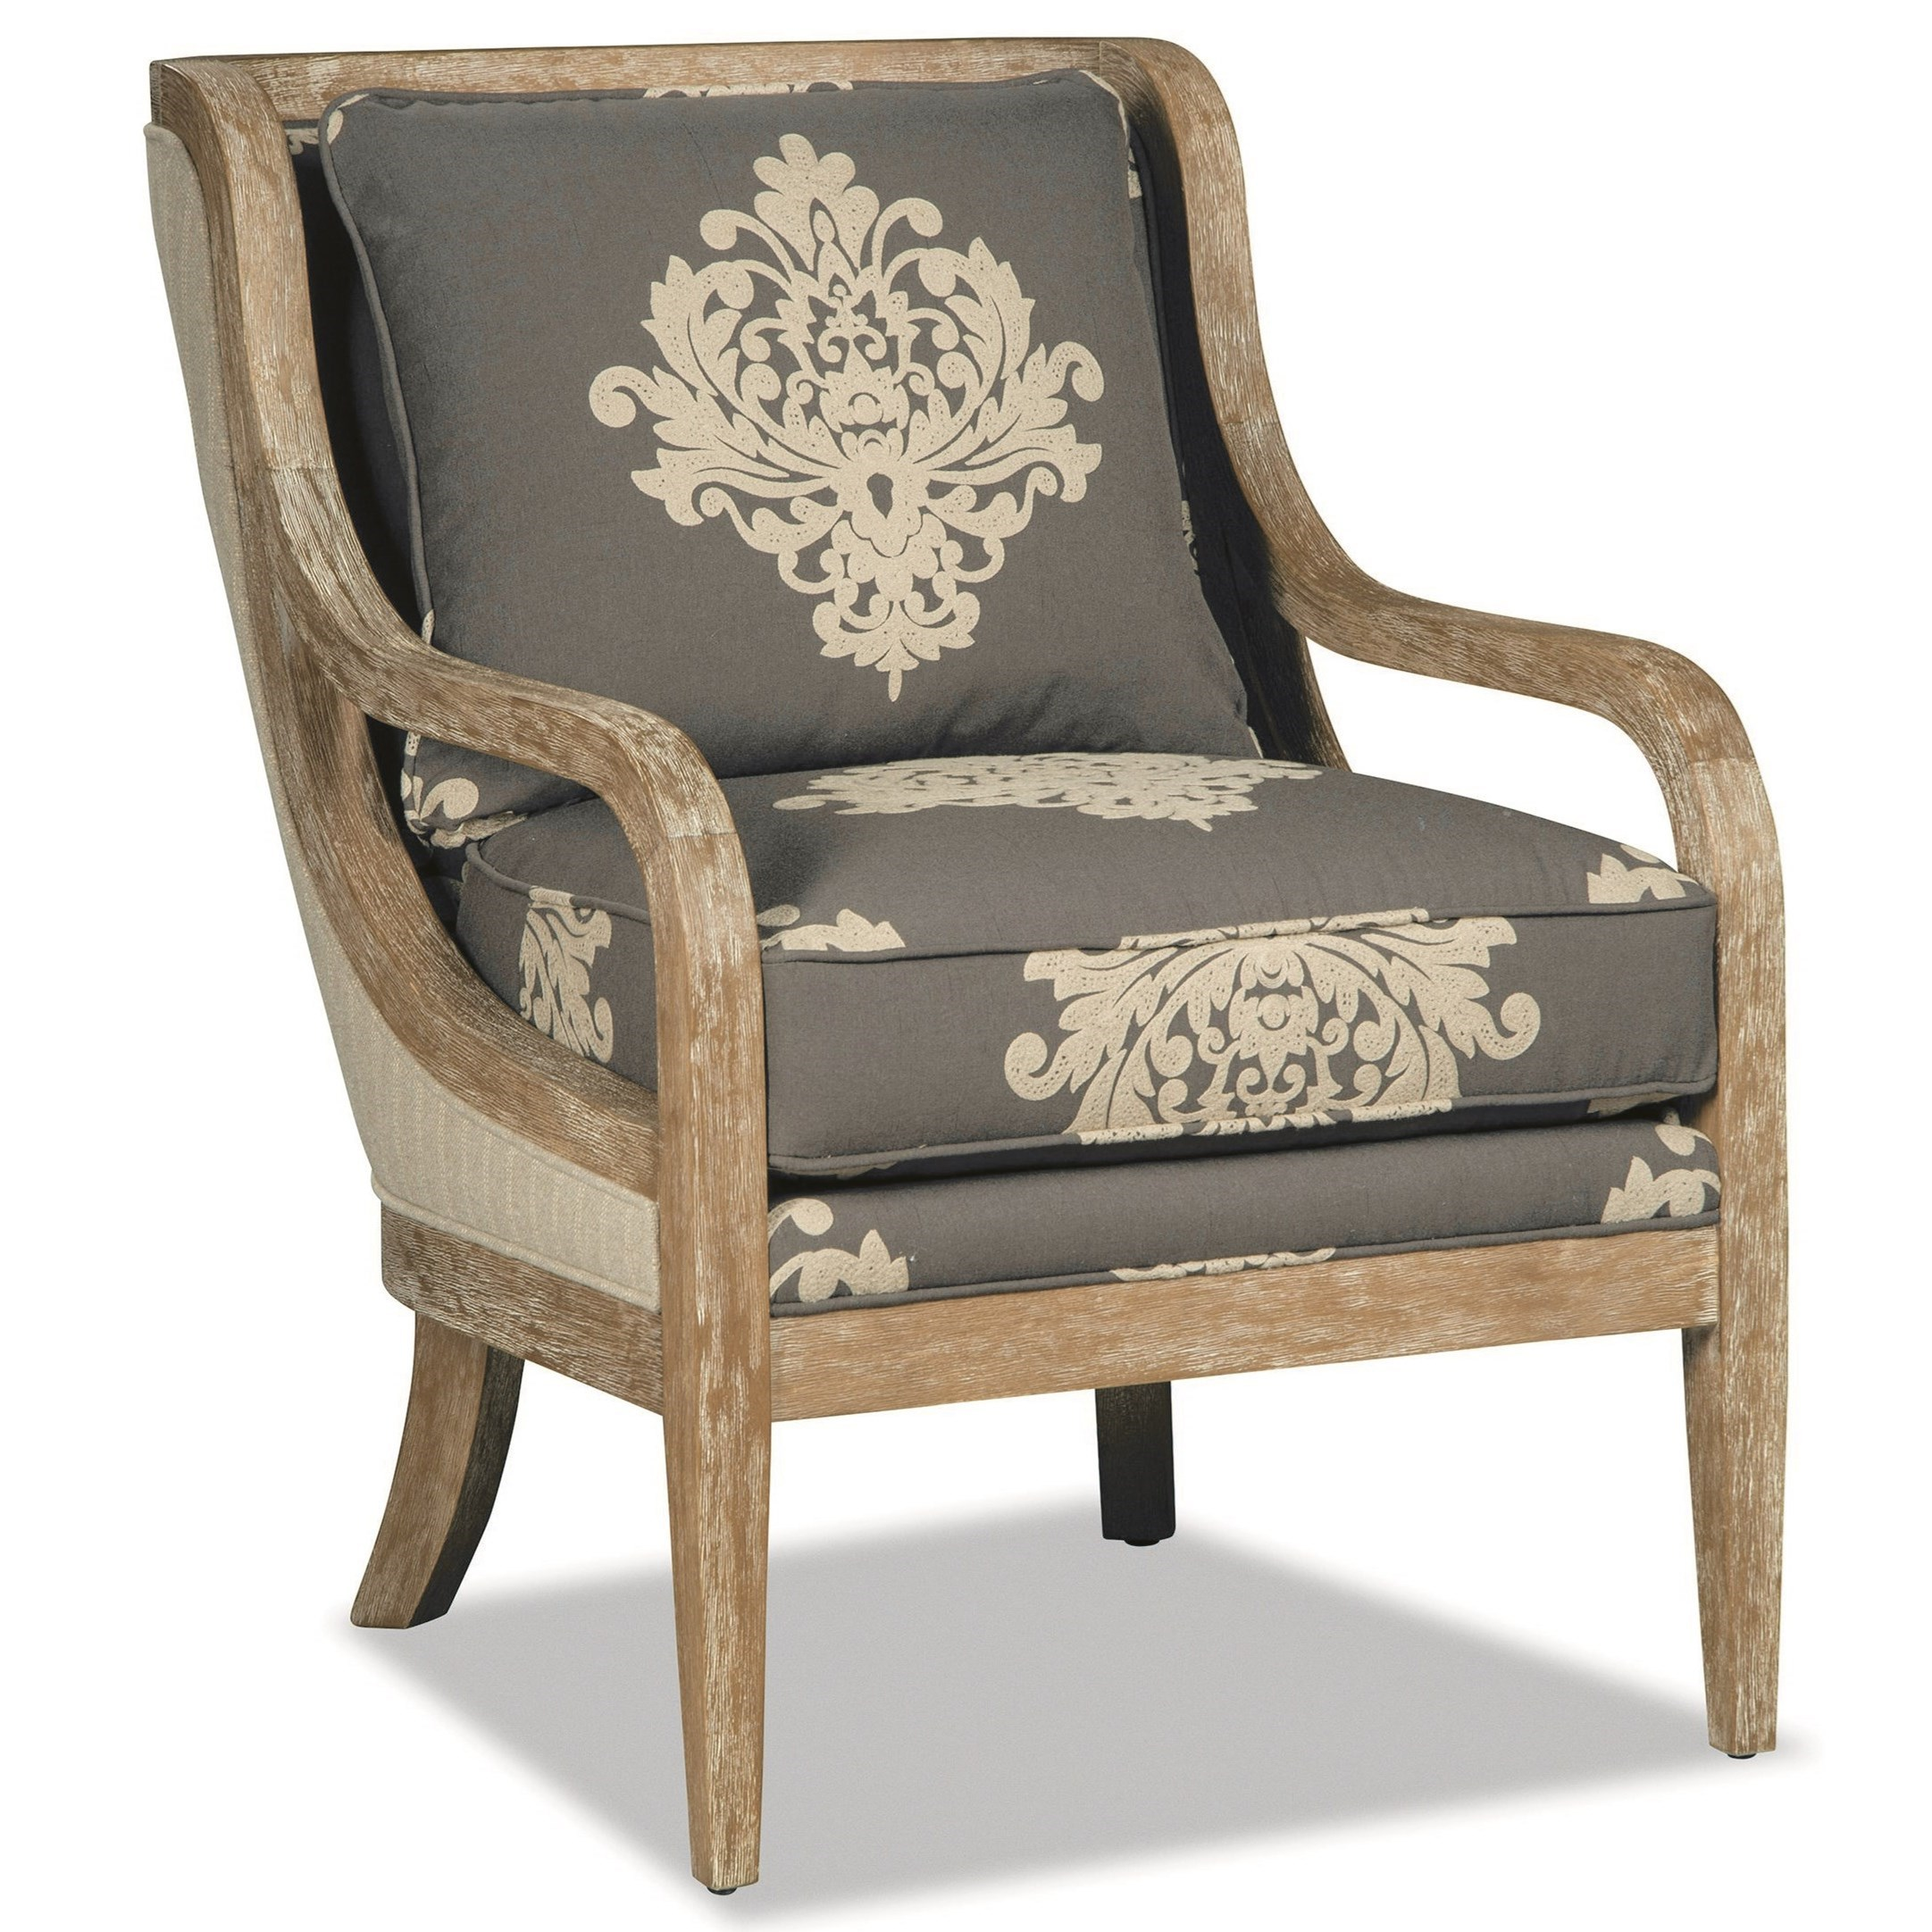 Craftmaster 067410-067510 Accent Chair with Exposed Wood Trim in Weathered Oak  sc 1 st  Boulevard Home Furnishings & Craftmaster 067410-067510 Accent Chair with Exposed Wood Trim in ...